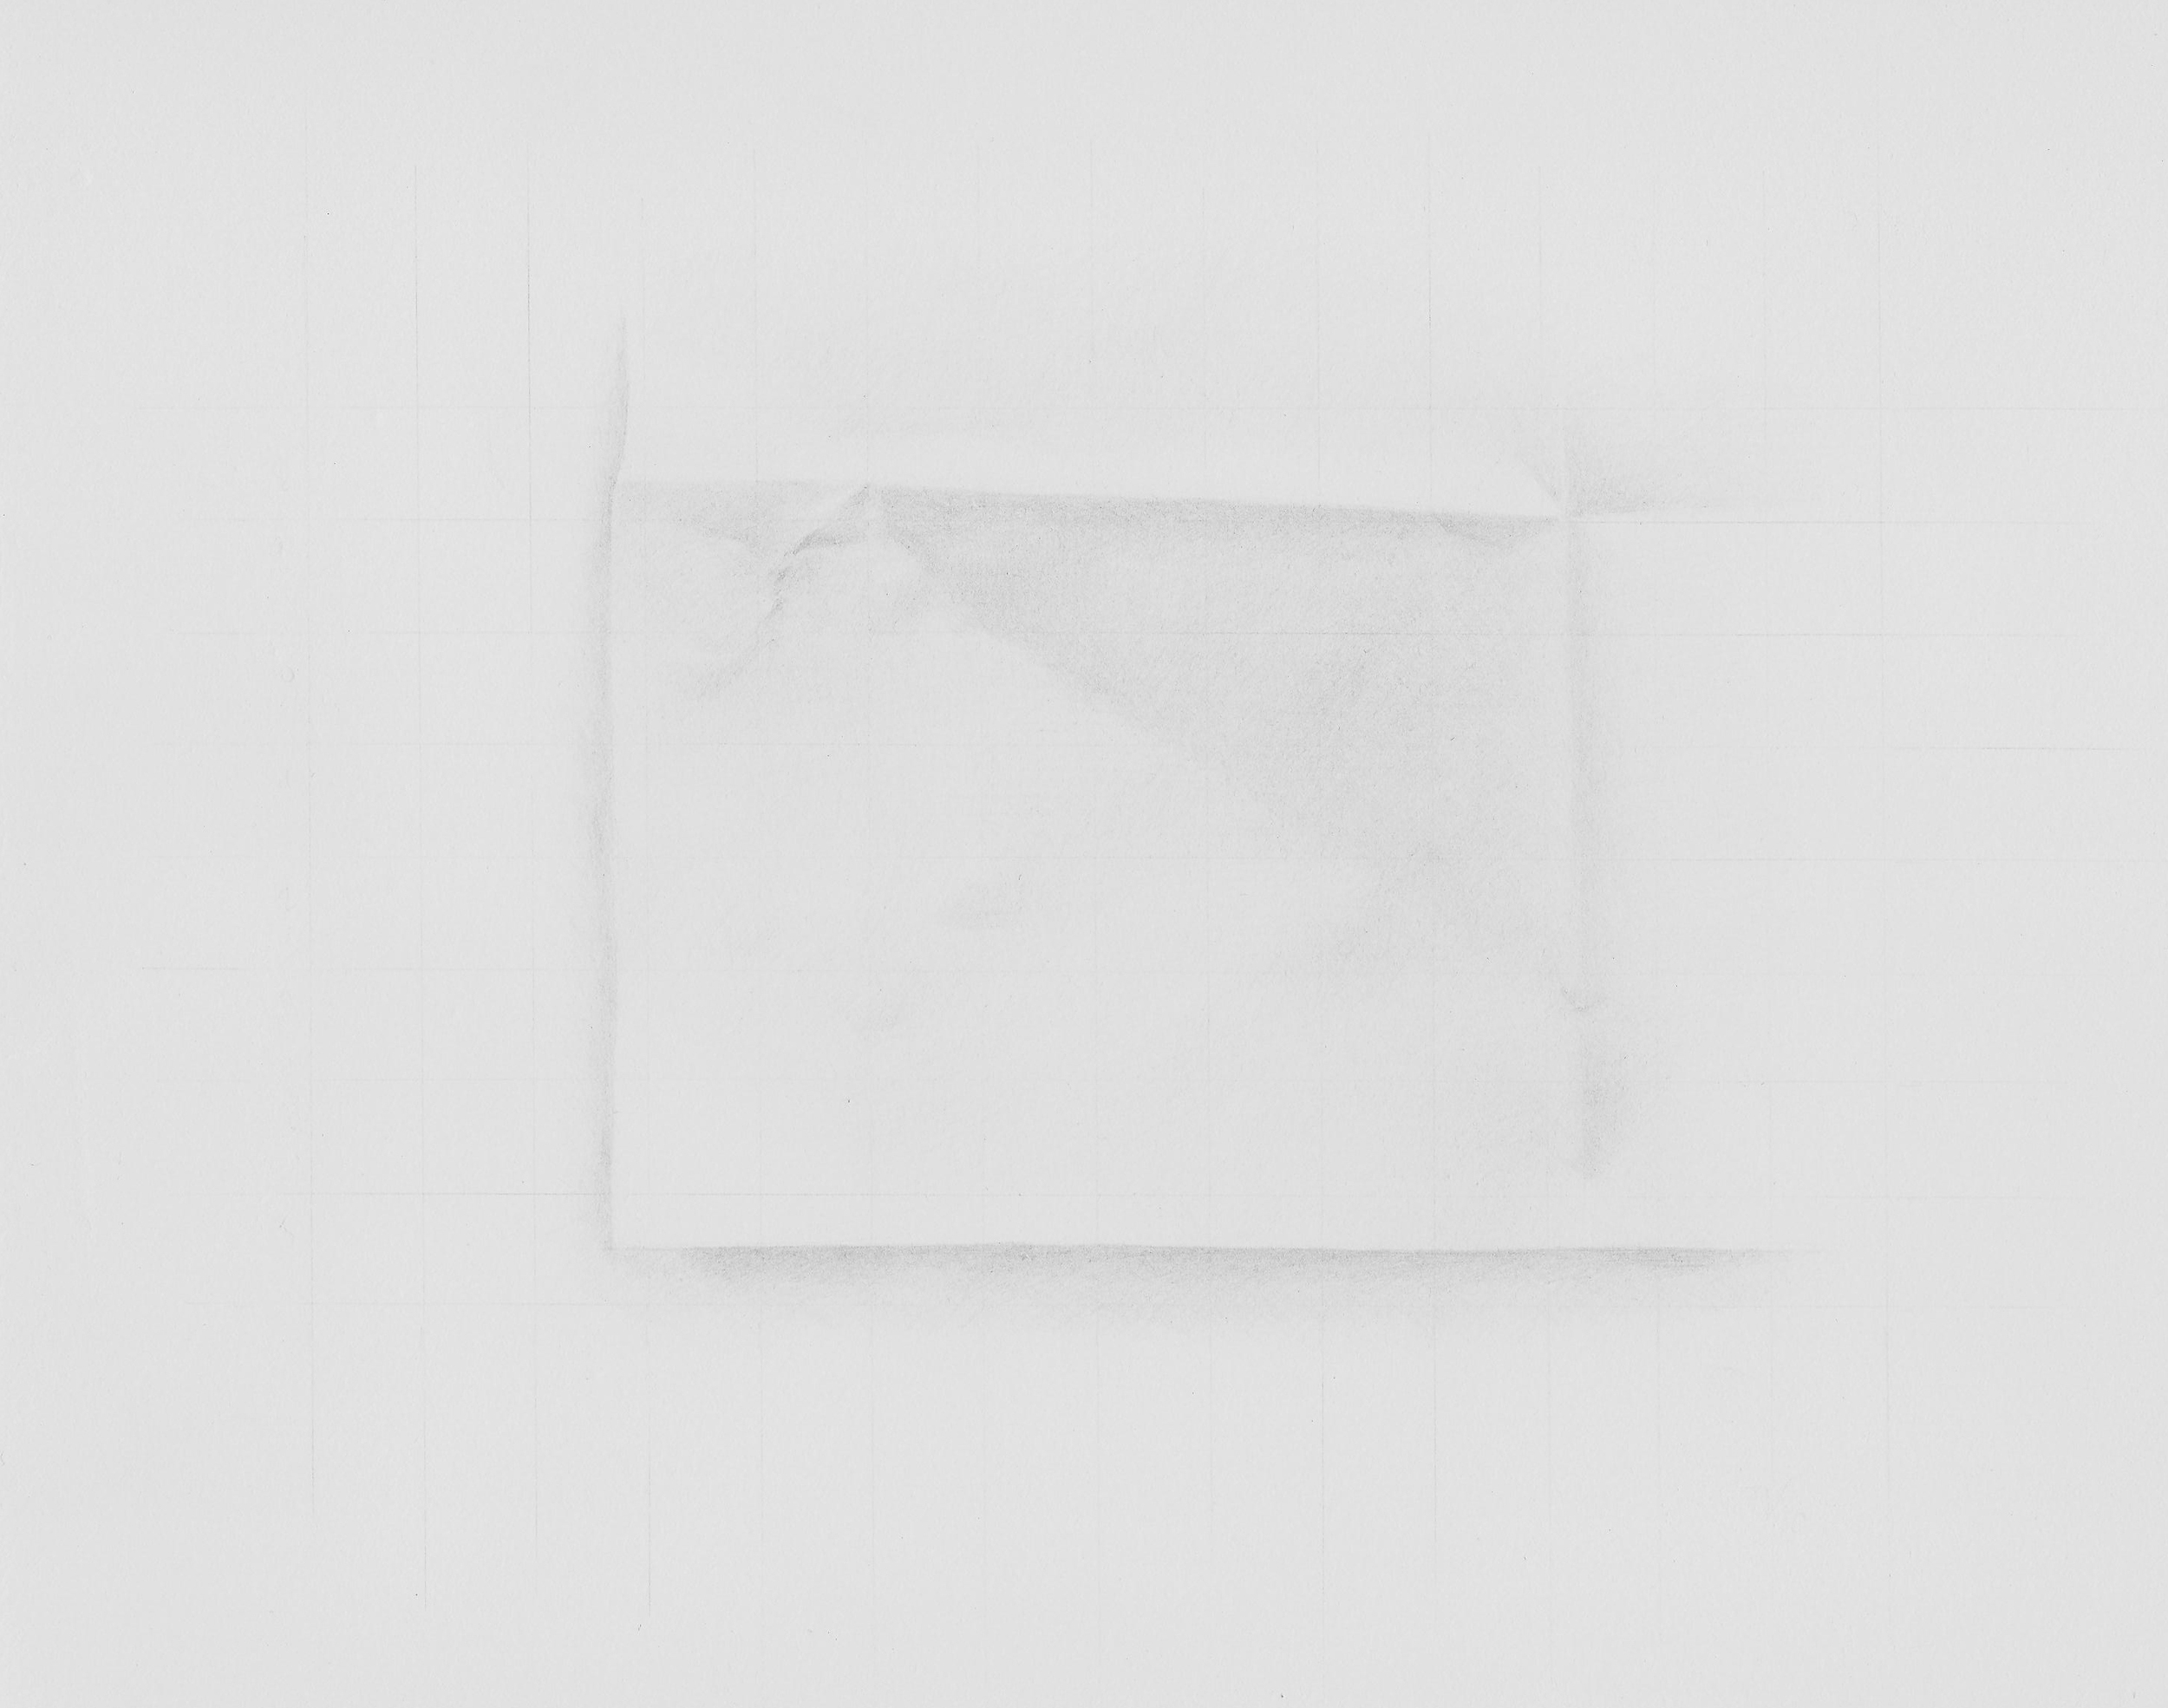 Paperscape-303.jpg